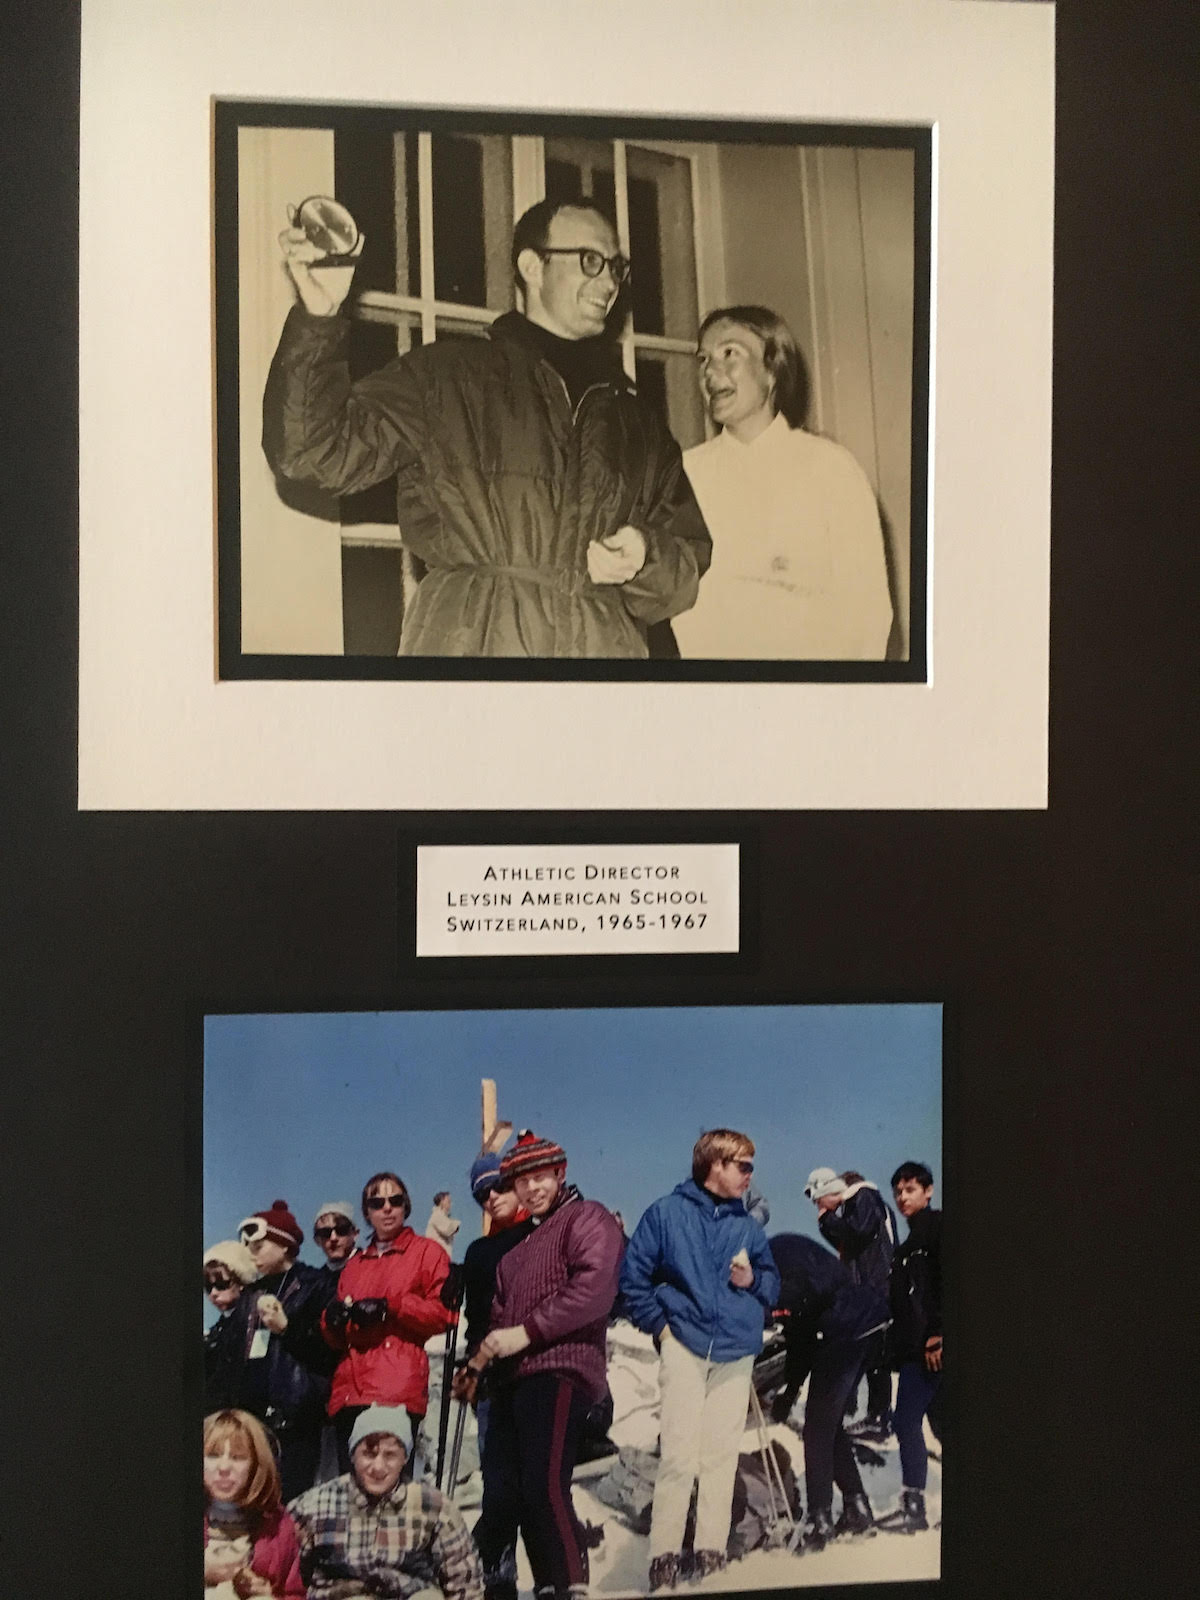 Photos on display at the memorial included these images from Royal and Liz Robbins' time at the Leysin American School in Switzerland where Royal served as the athletic director from 1965 to 1967. [Photo] Derek Franz